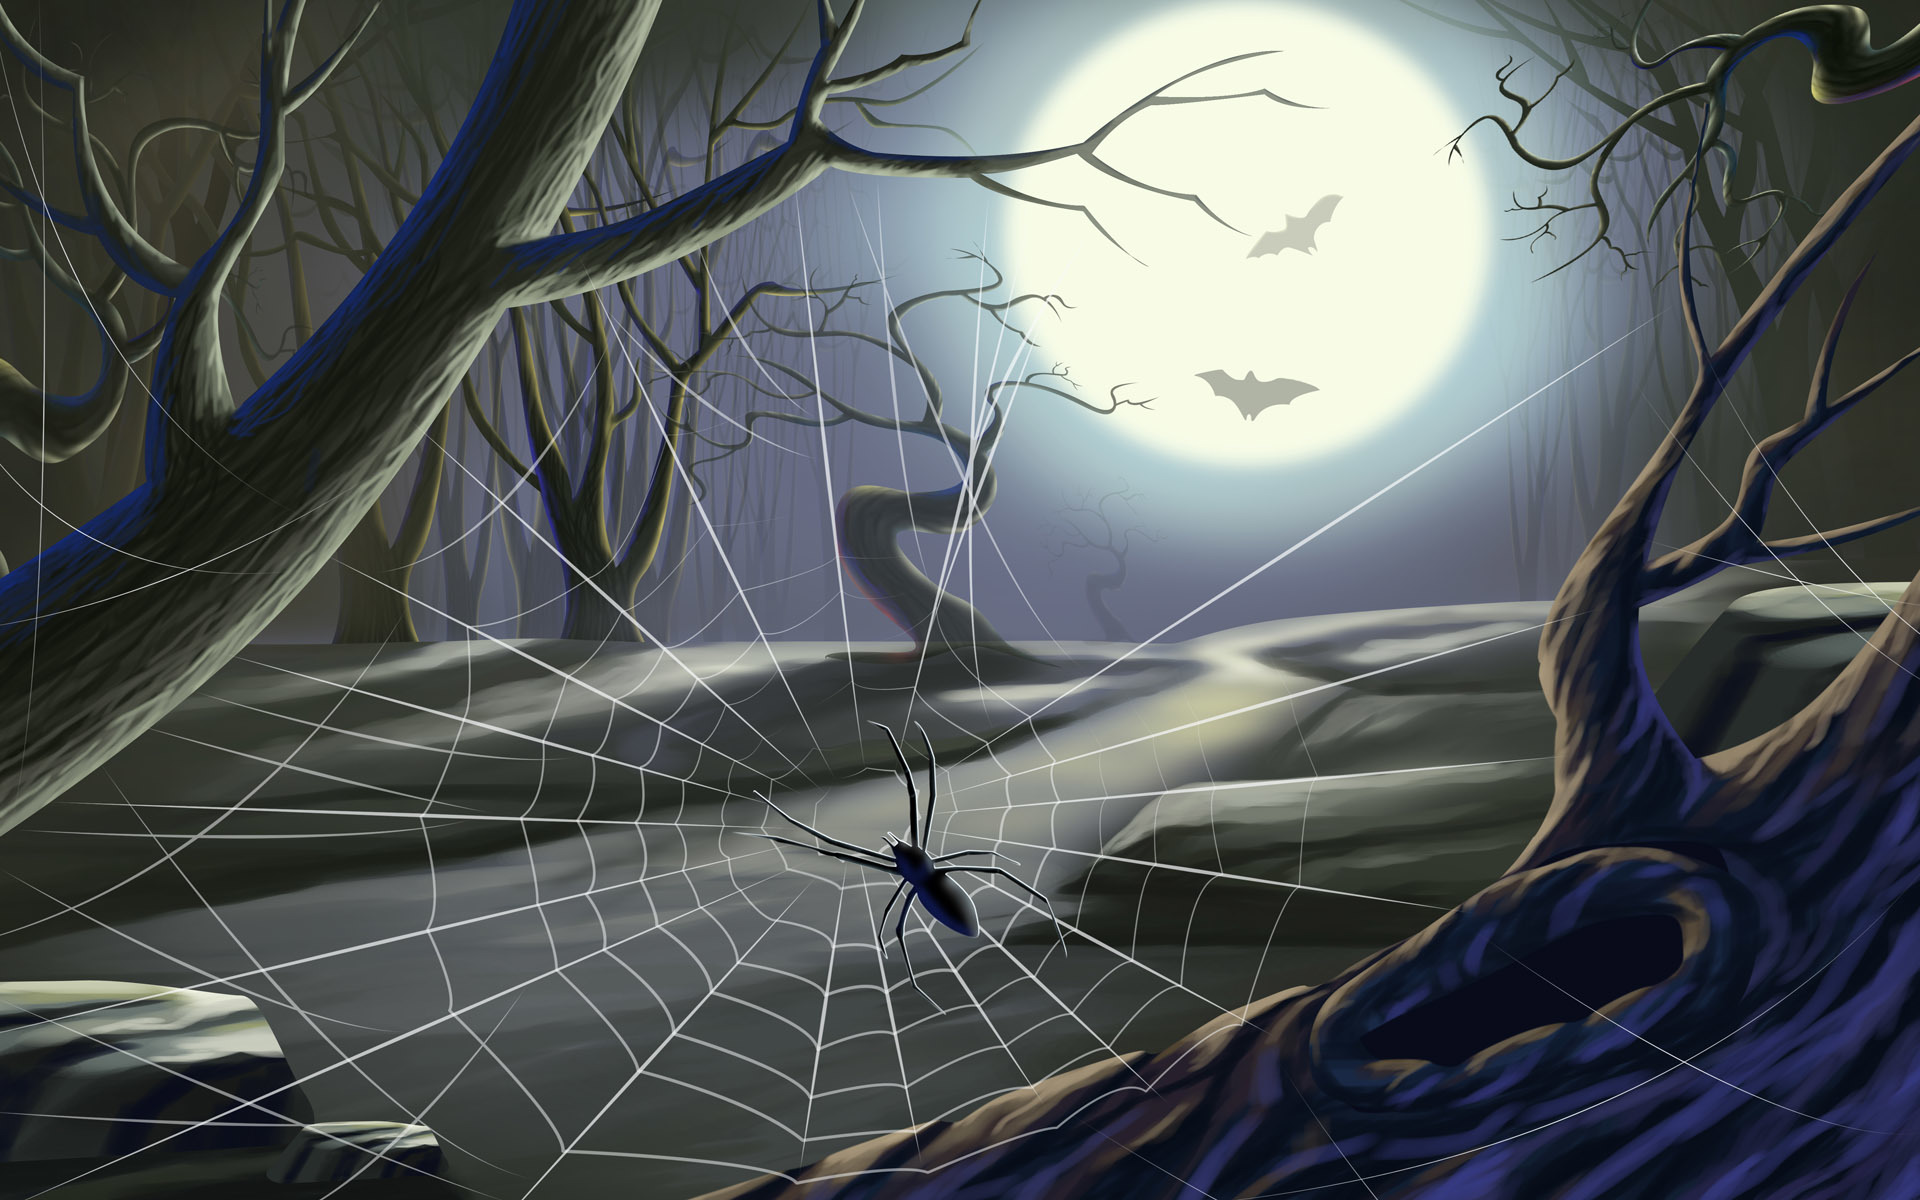 halloweenweb spider web moon HD Wallpaper